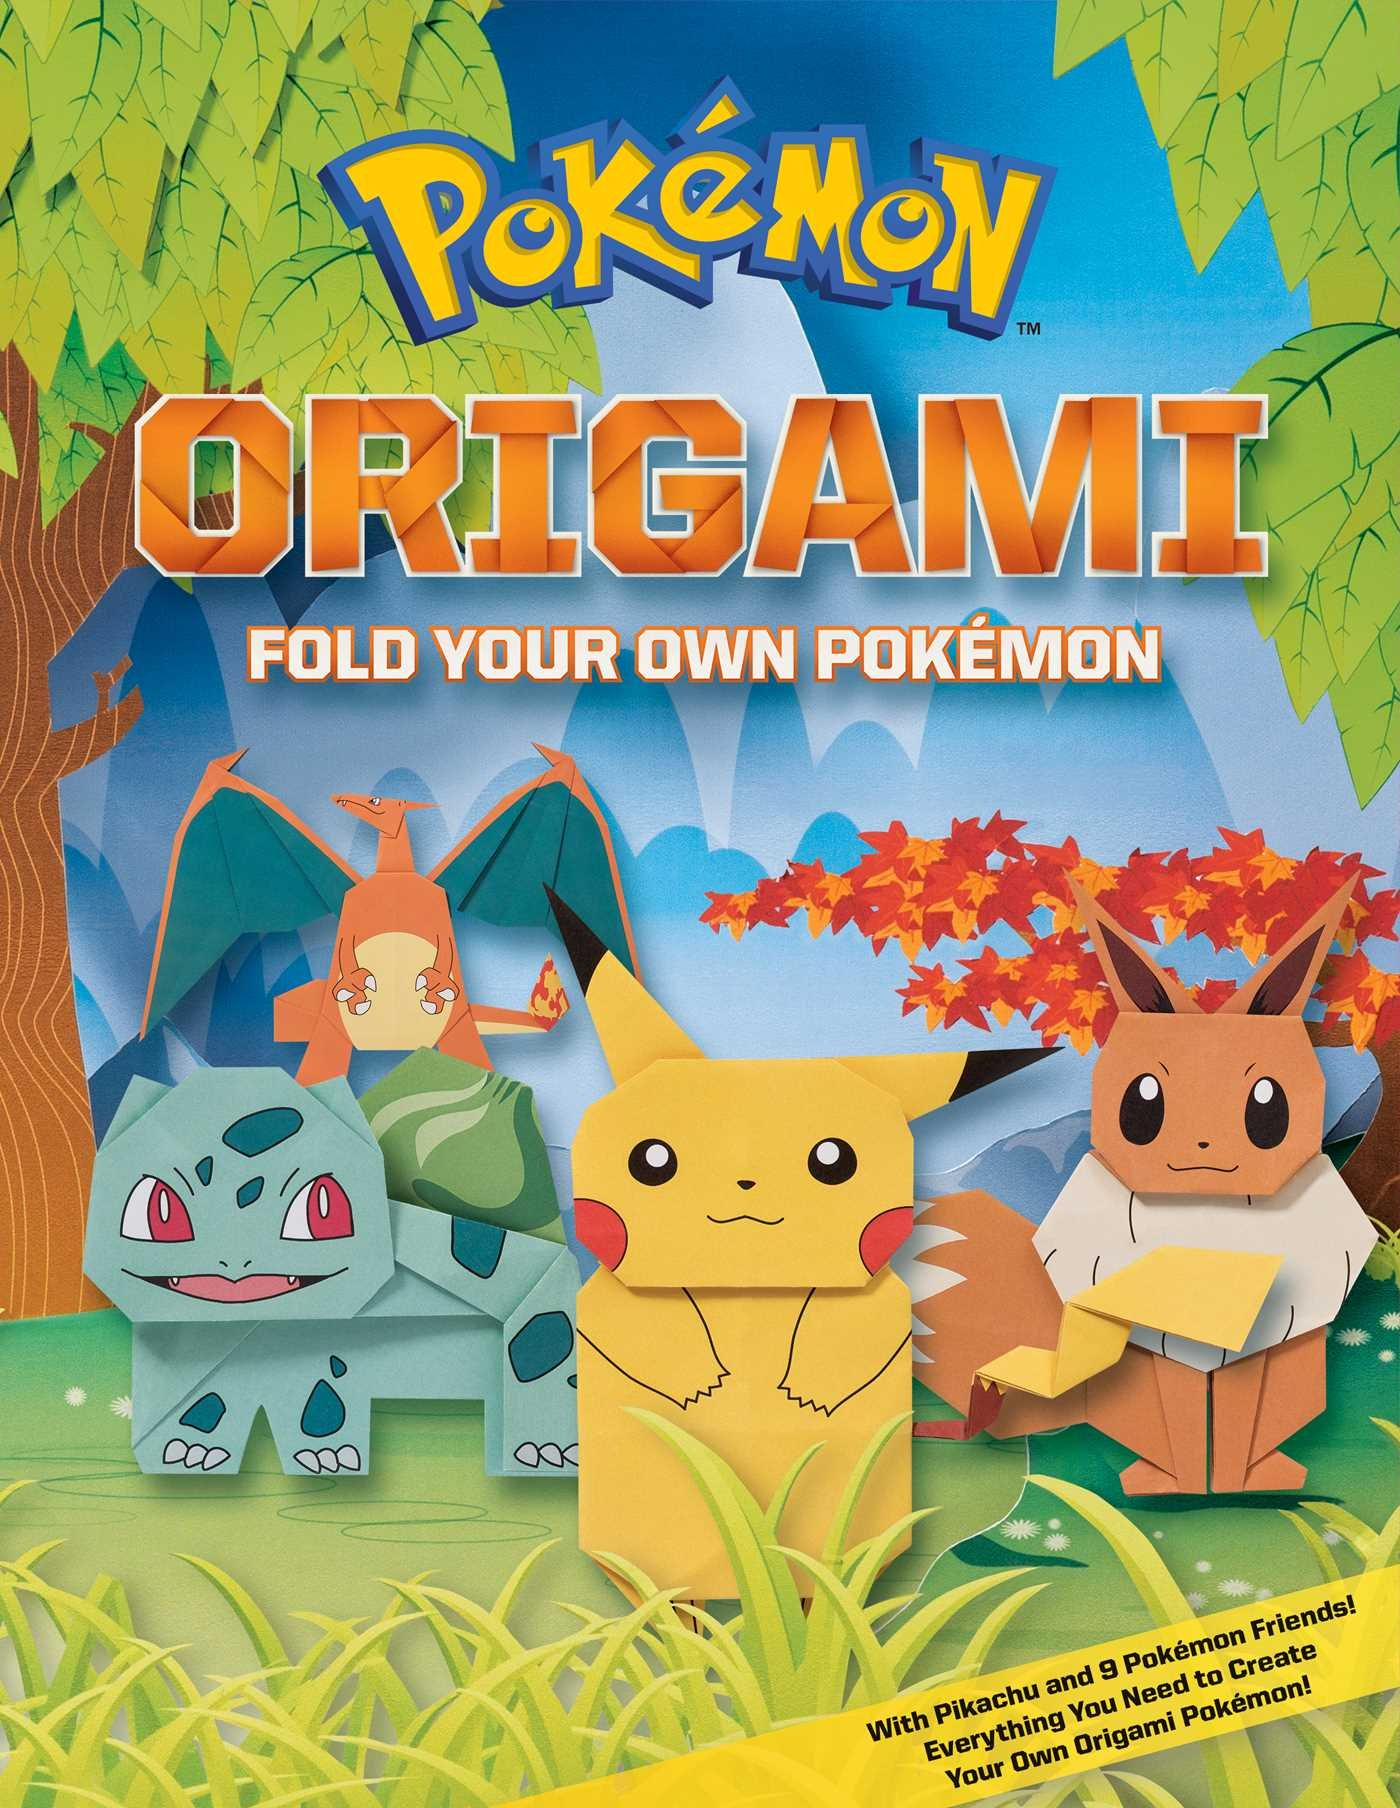 How to Make an Origami Pikachu (with Pictures) - wikiHow | 1808x1400